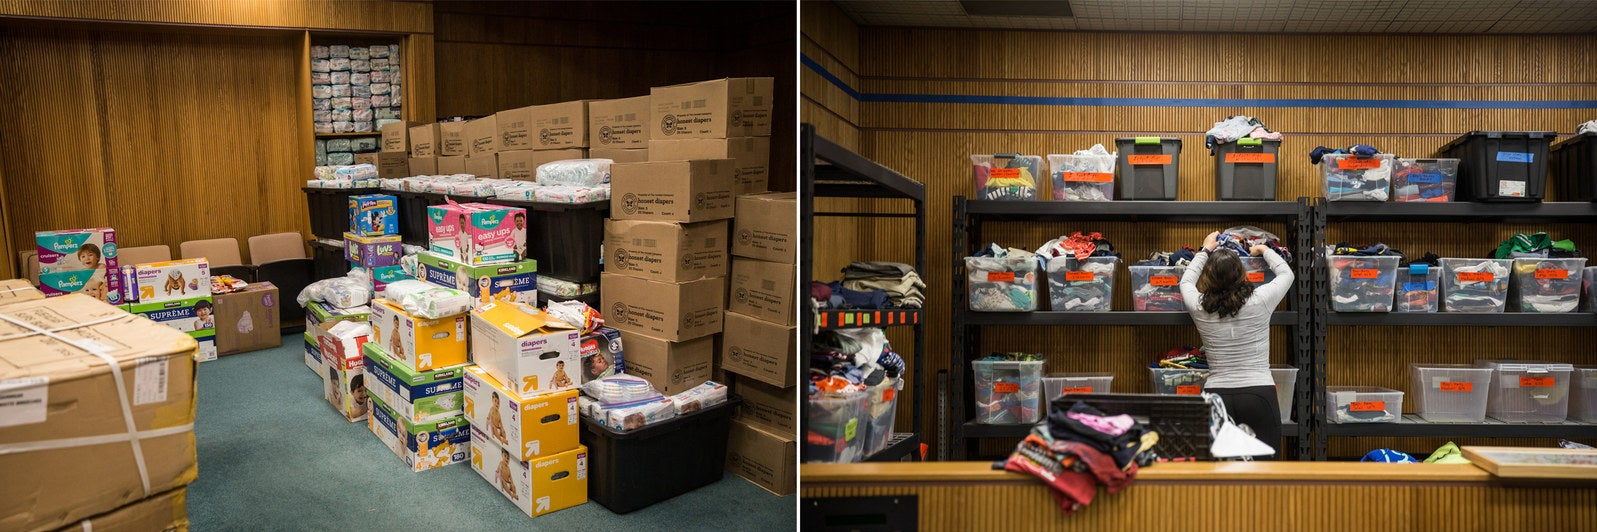 Supplies at the Rapid Response shelter in San Diego.